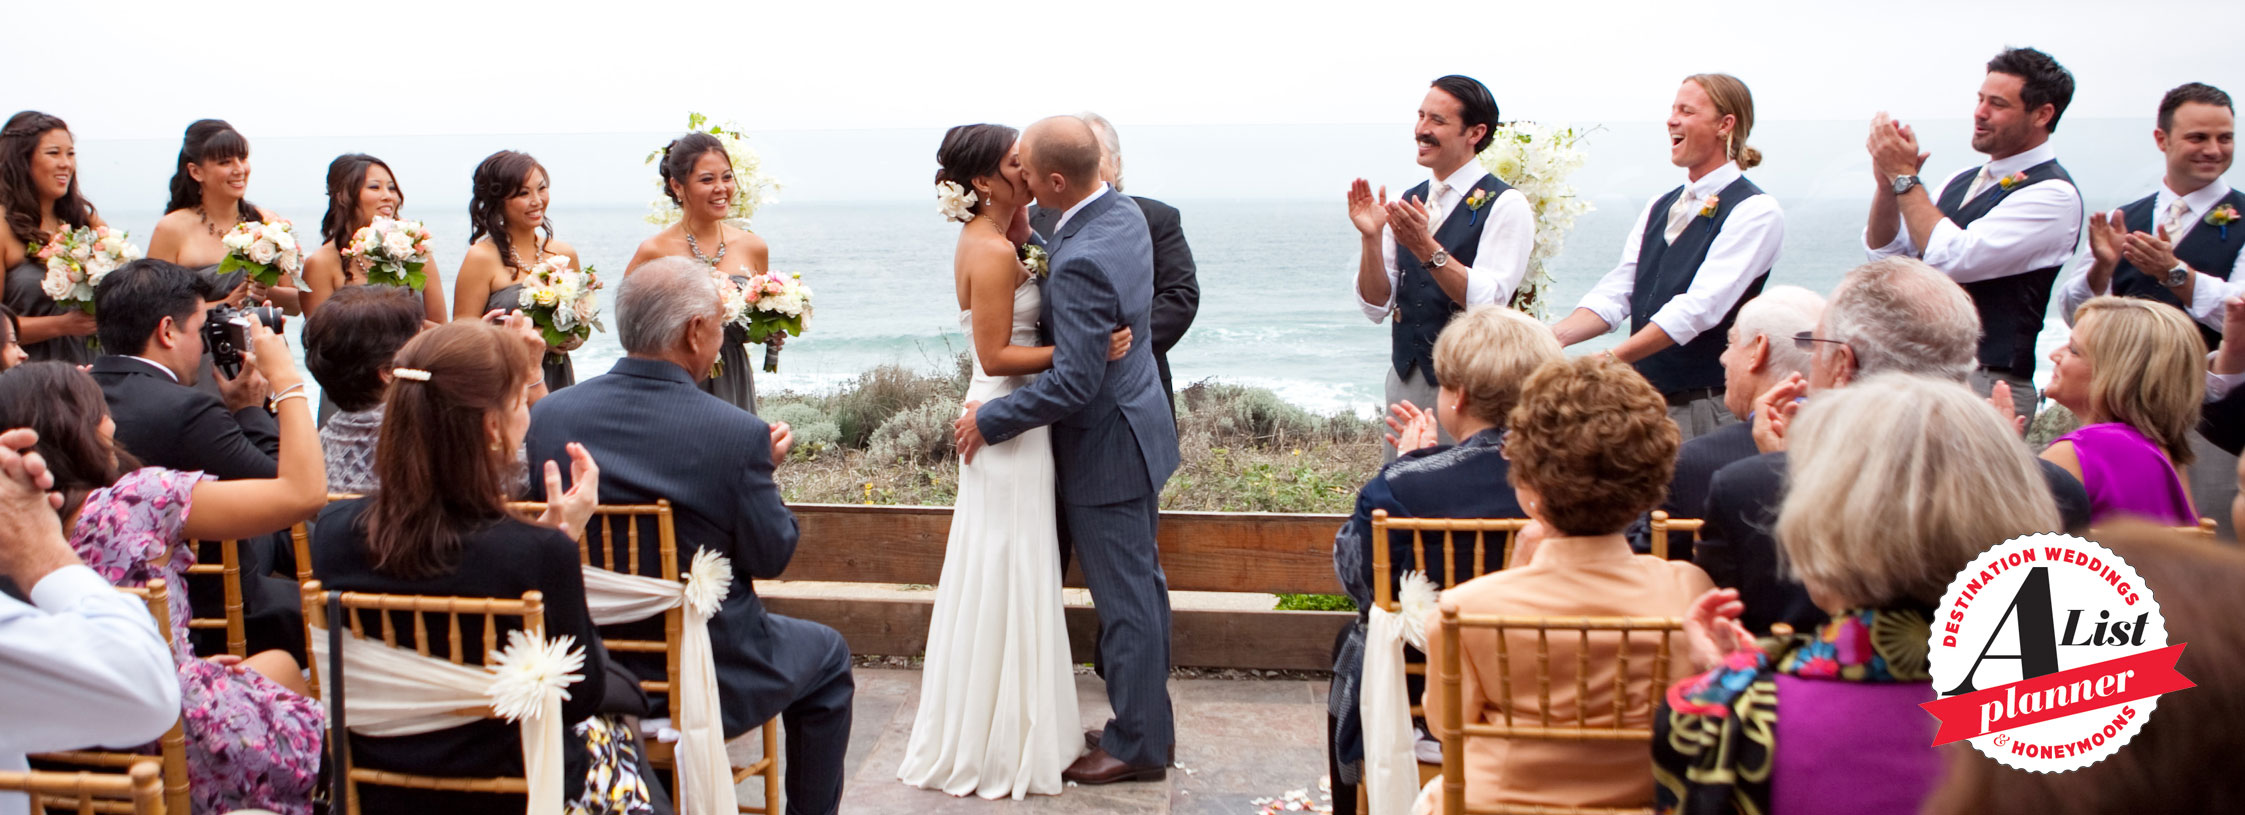 Guests clapping at a wedding ceremony in Half Moon Bay by Destination wedding planner Mango Muse Events